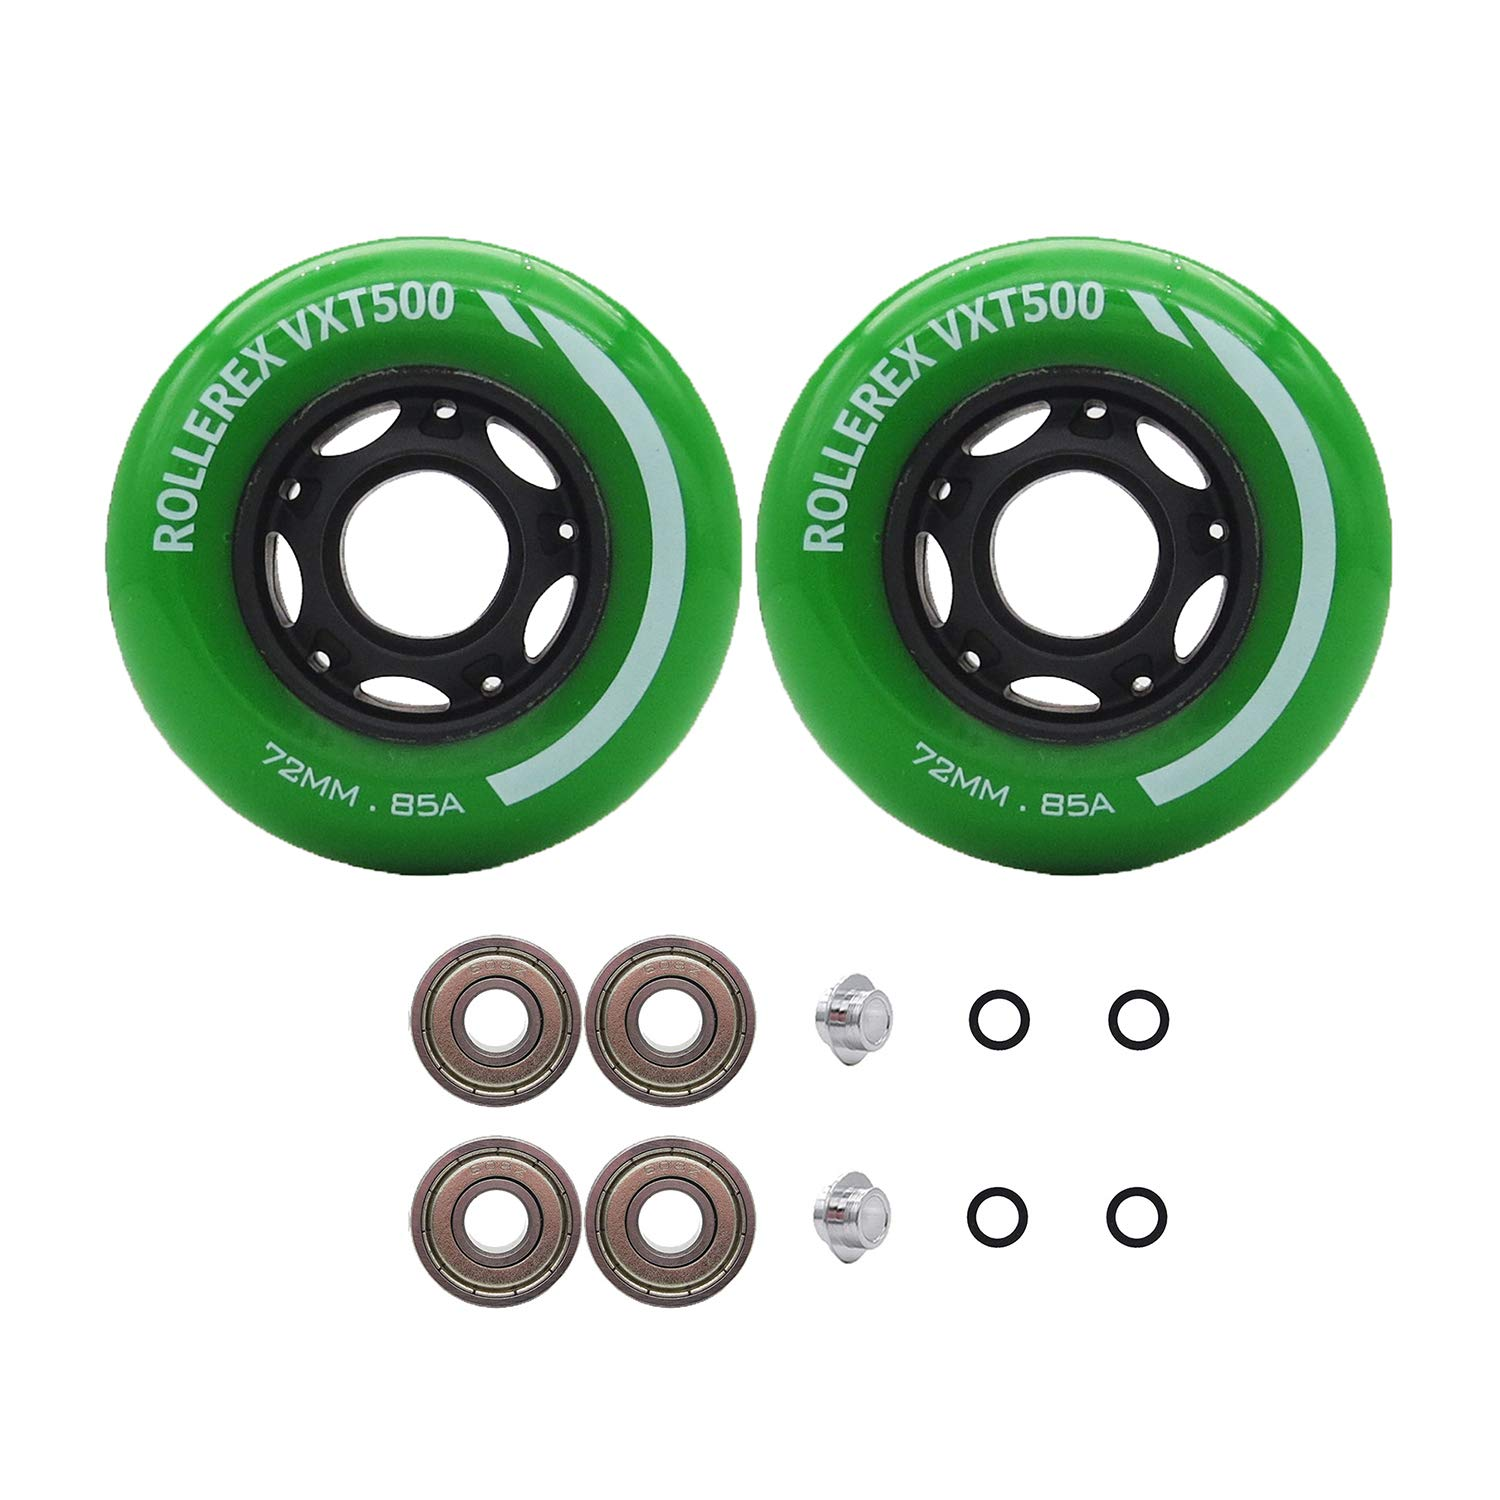 Rollerex VXT500 Inline Skate Wheels (2-Pack w/Bearings, spacers and washers) (Turf Green, 72mm) by Rollerex